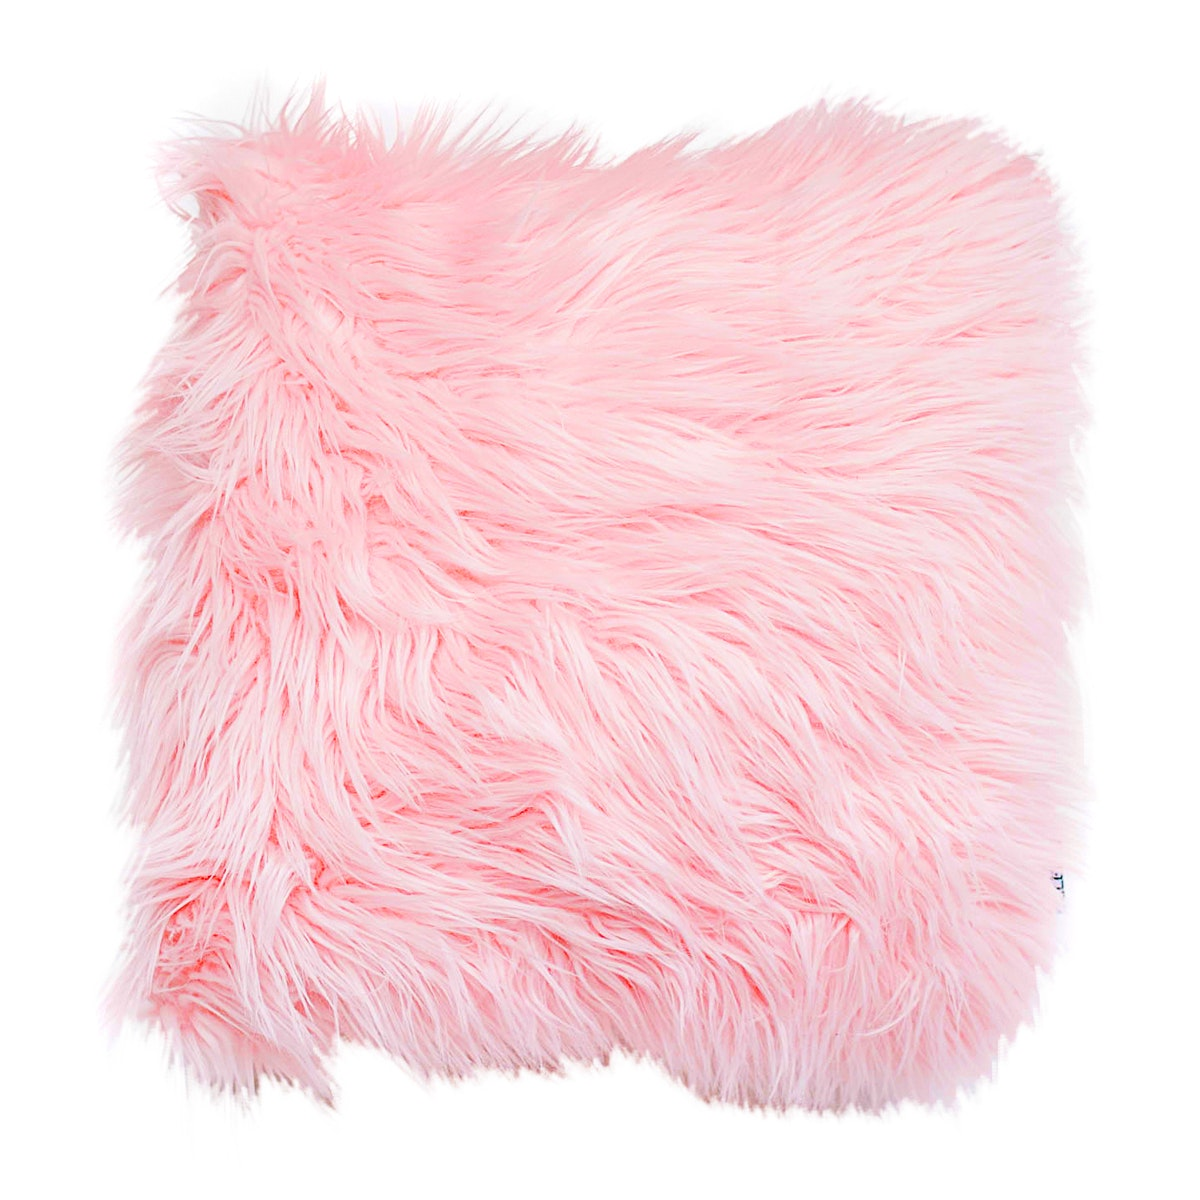 Glerry Home Decor Blossom Fur Cushion 40x40cm